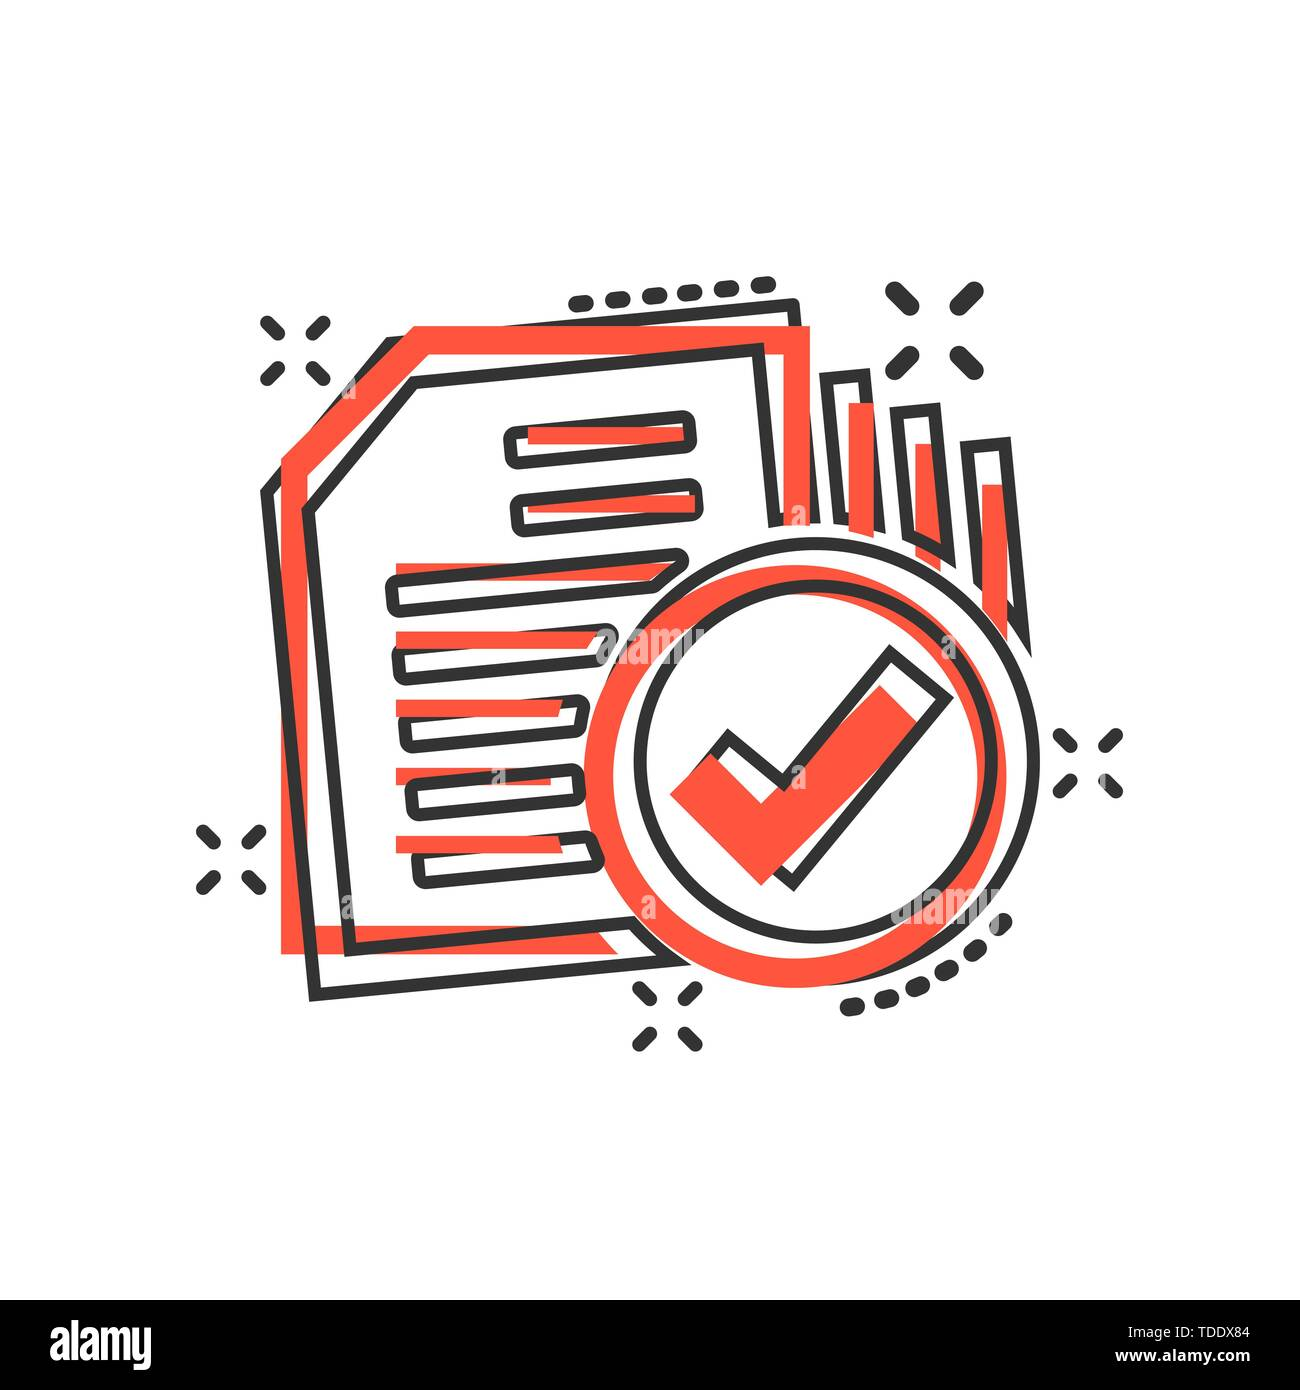 Compliance document icon in comic style  Approved process